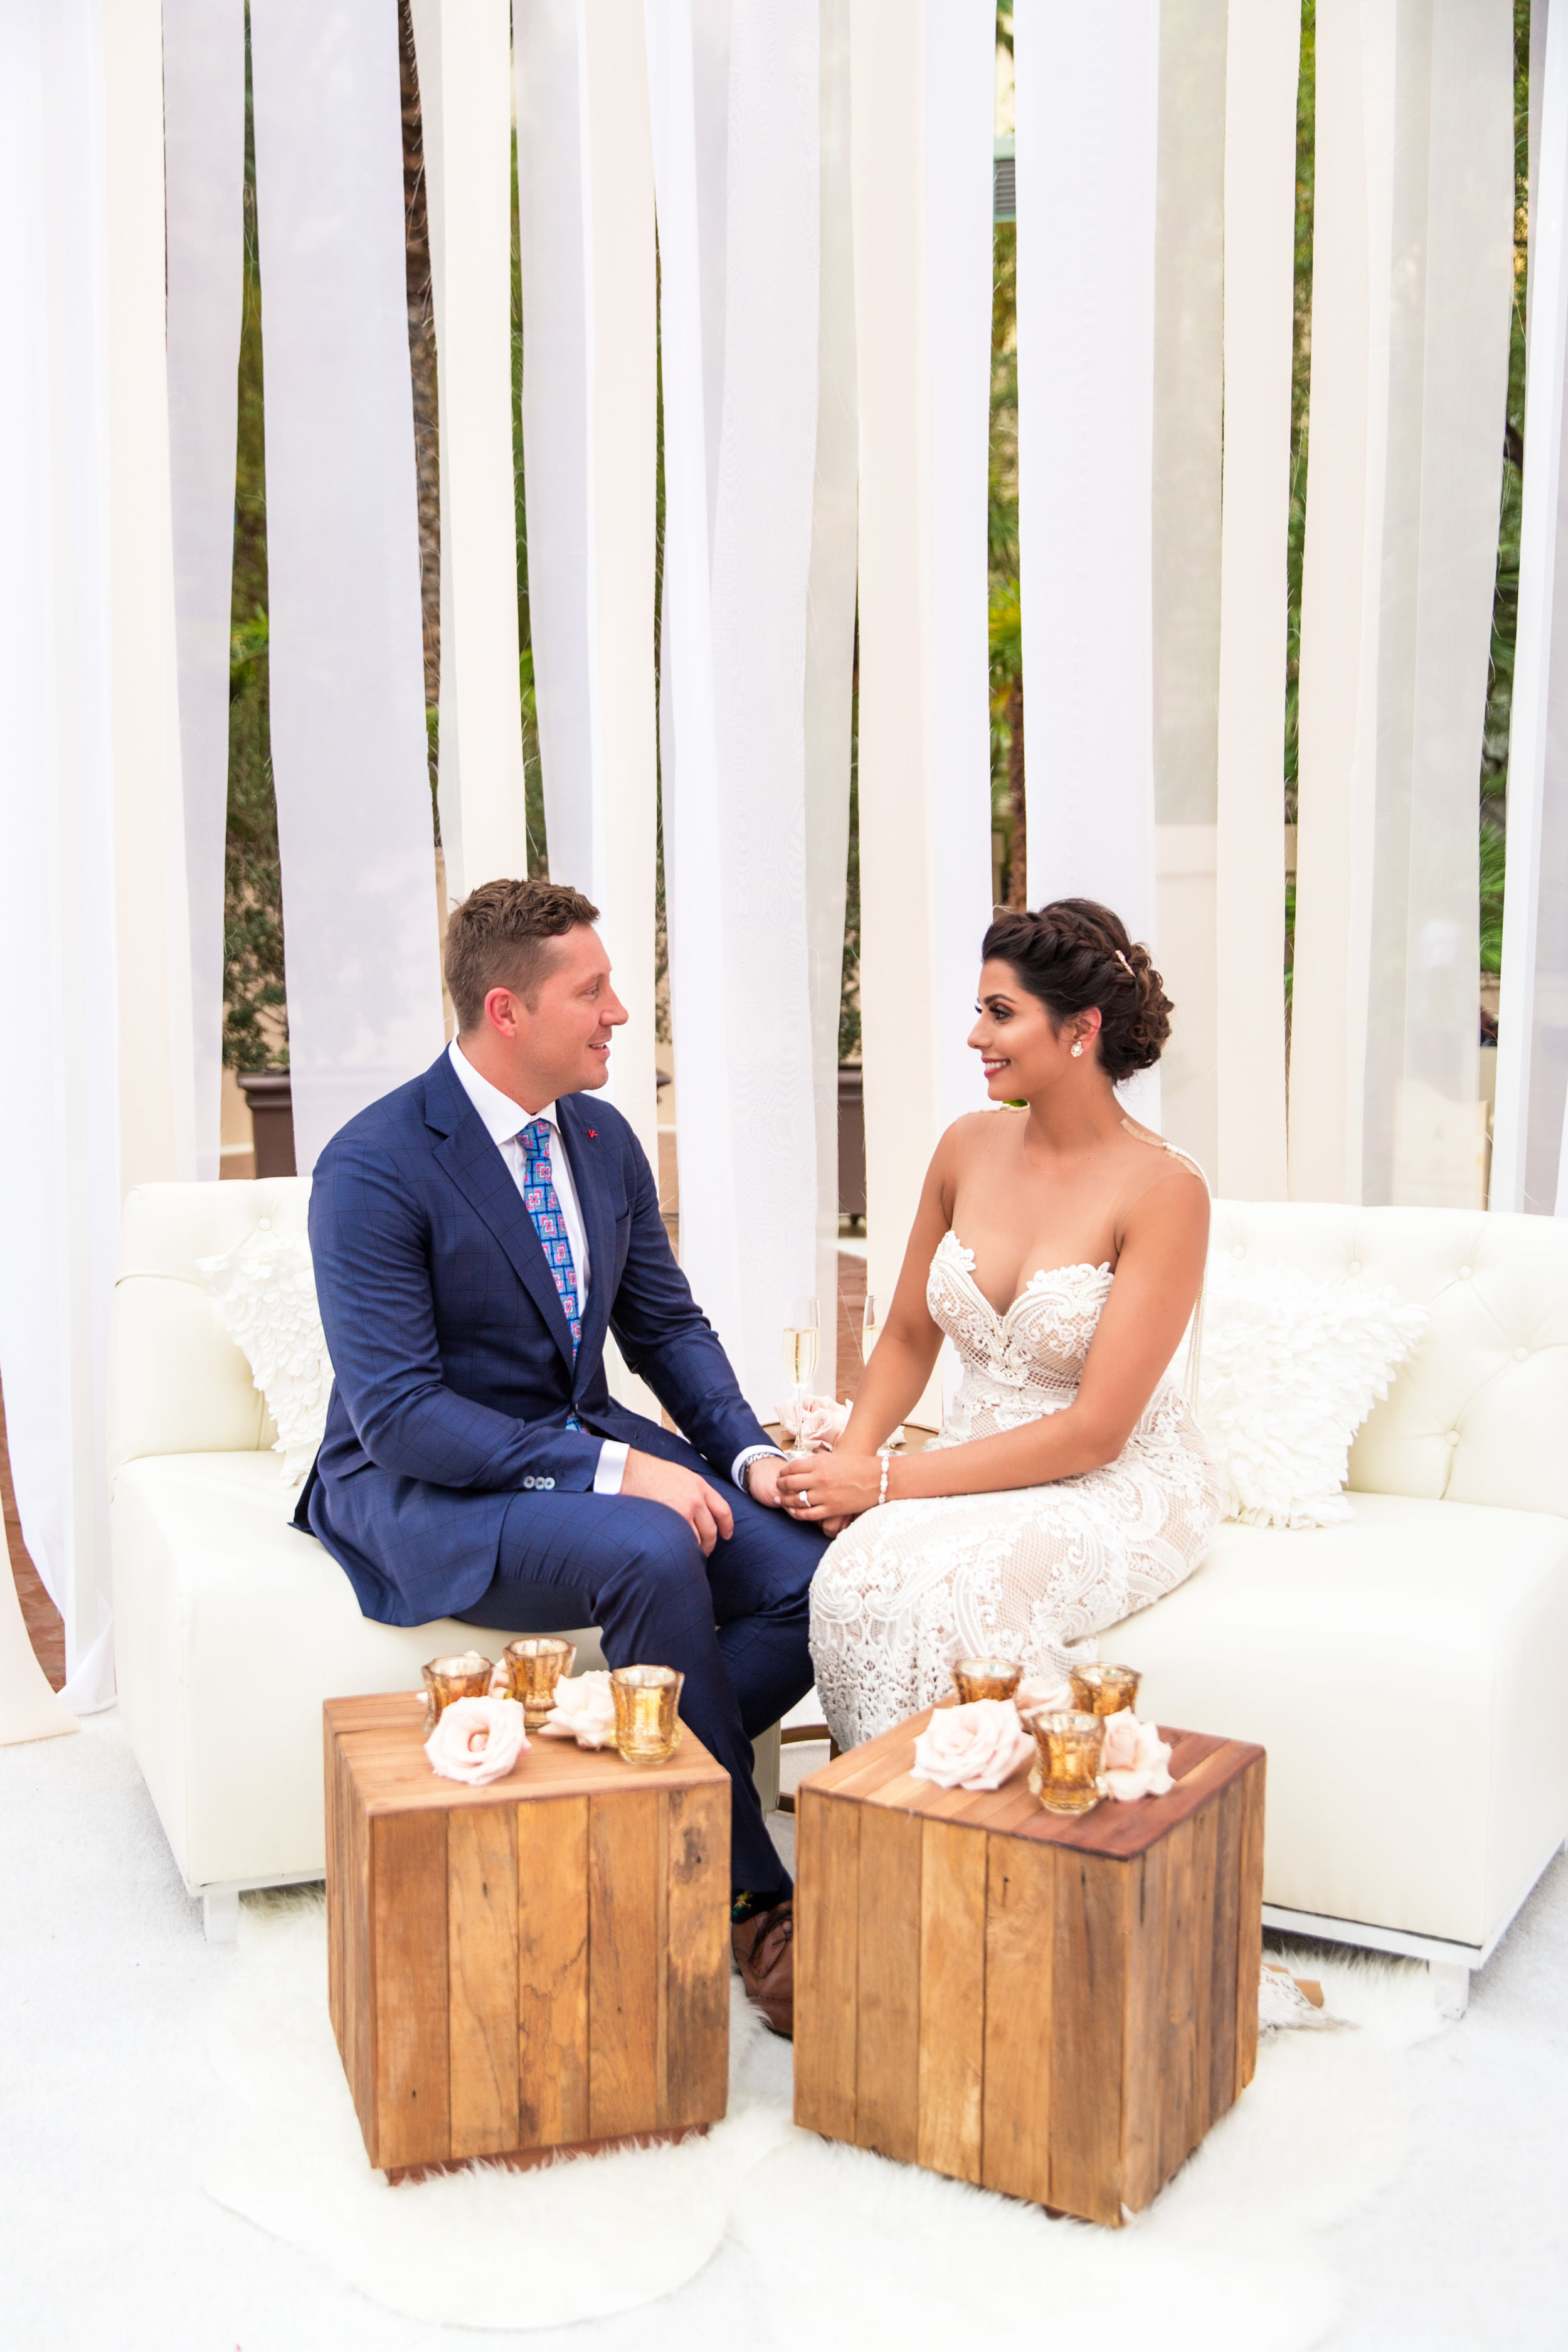 Couple e in their birdcage.Wedding Planning by  Andrea Eppolito Events  · Photography by  Shandro Photo   · Wedding Venue  Four Seasons Las Vegas  · Floral and Decor by  Destination by Design  · Cake by  Four Seasons Las Vegas  · Chandeliers and Lighting by  LED Unplugged  · Dress by  Berta